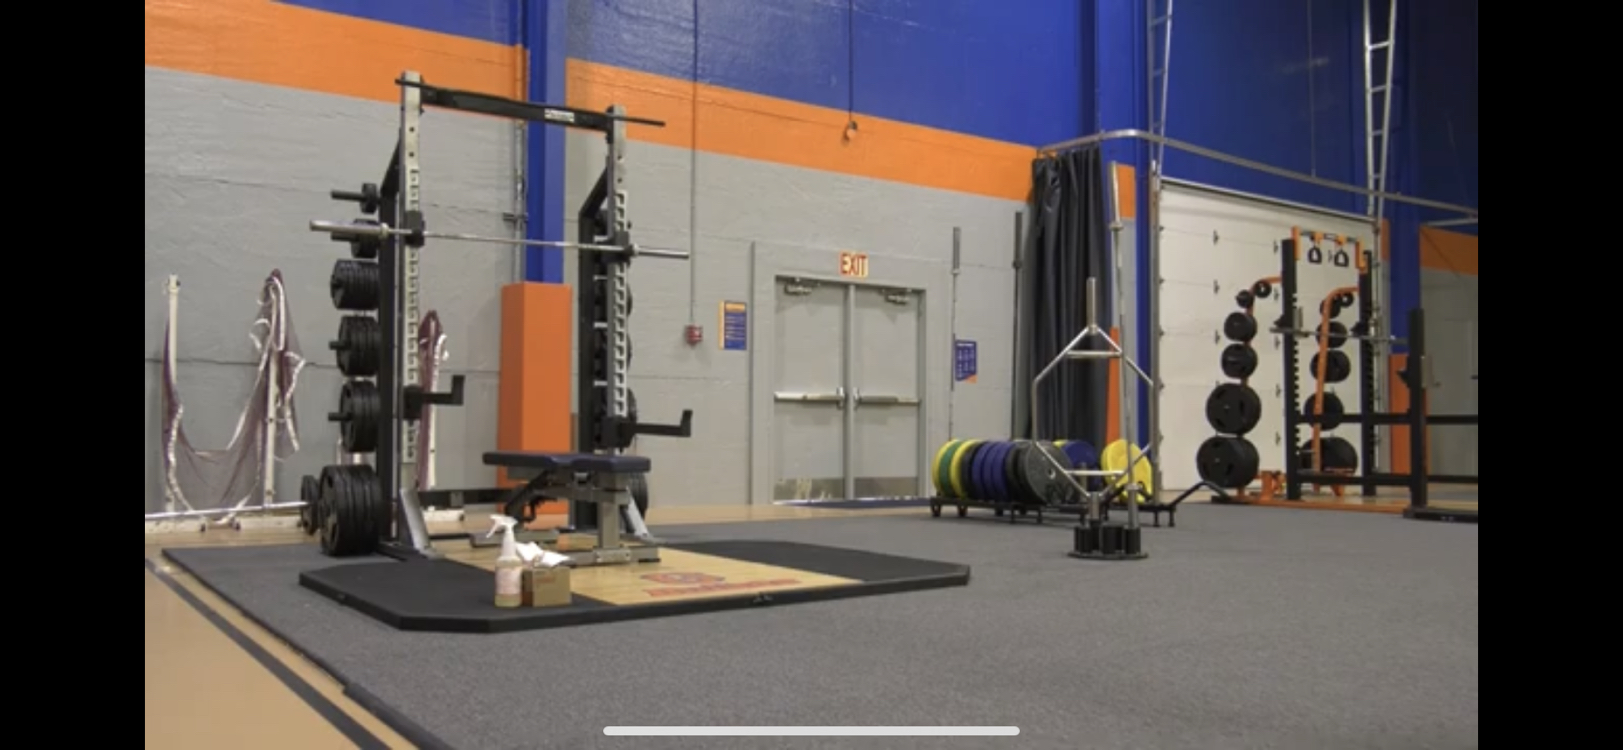 Gettysburg College Athletics facilities with spaced out equipment (Photo courtesy of Gettysburg College Athletics)